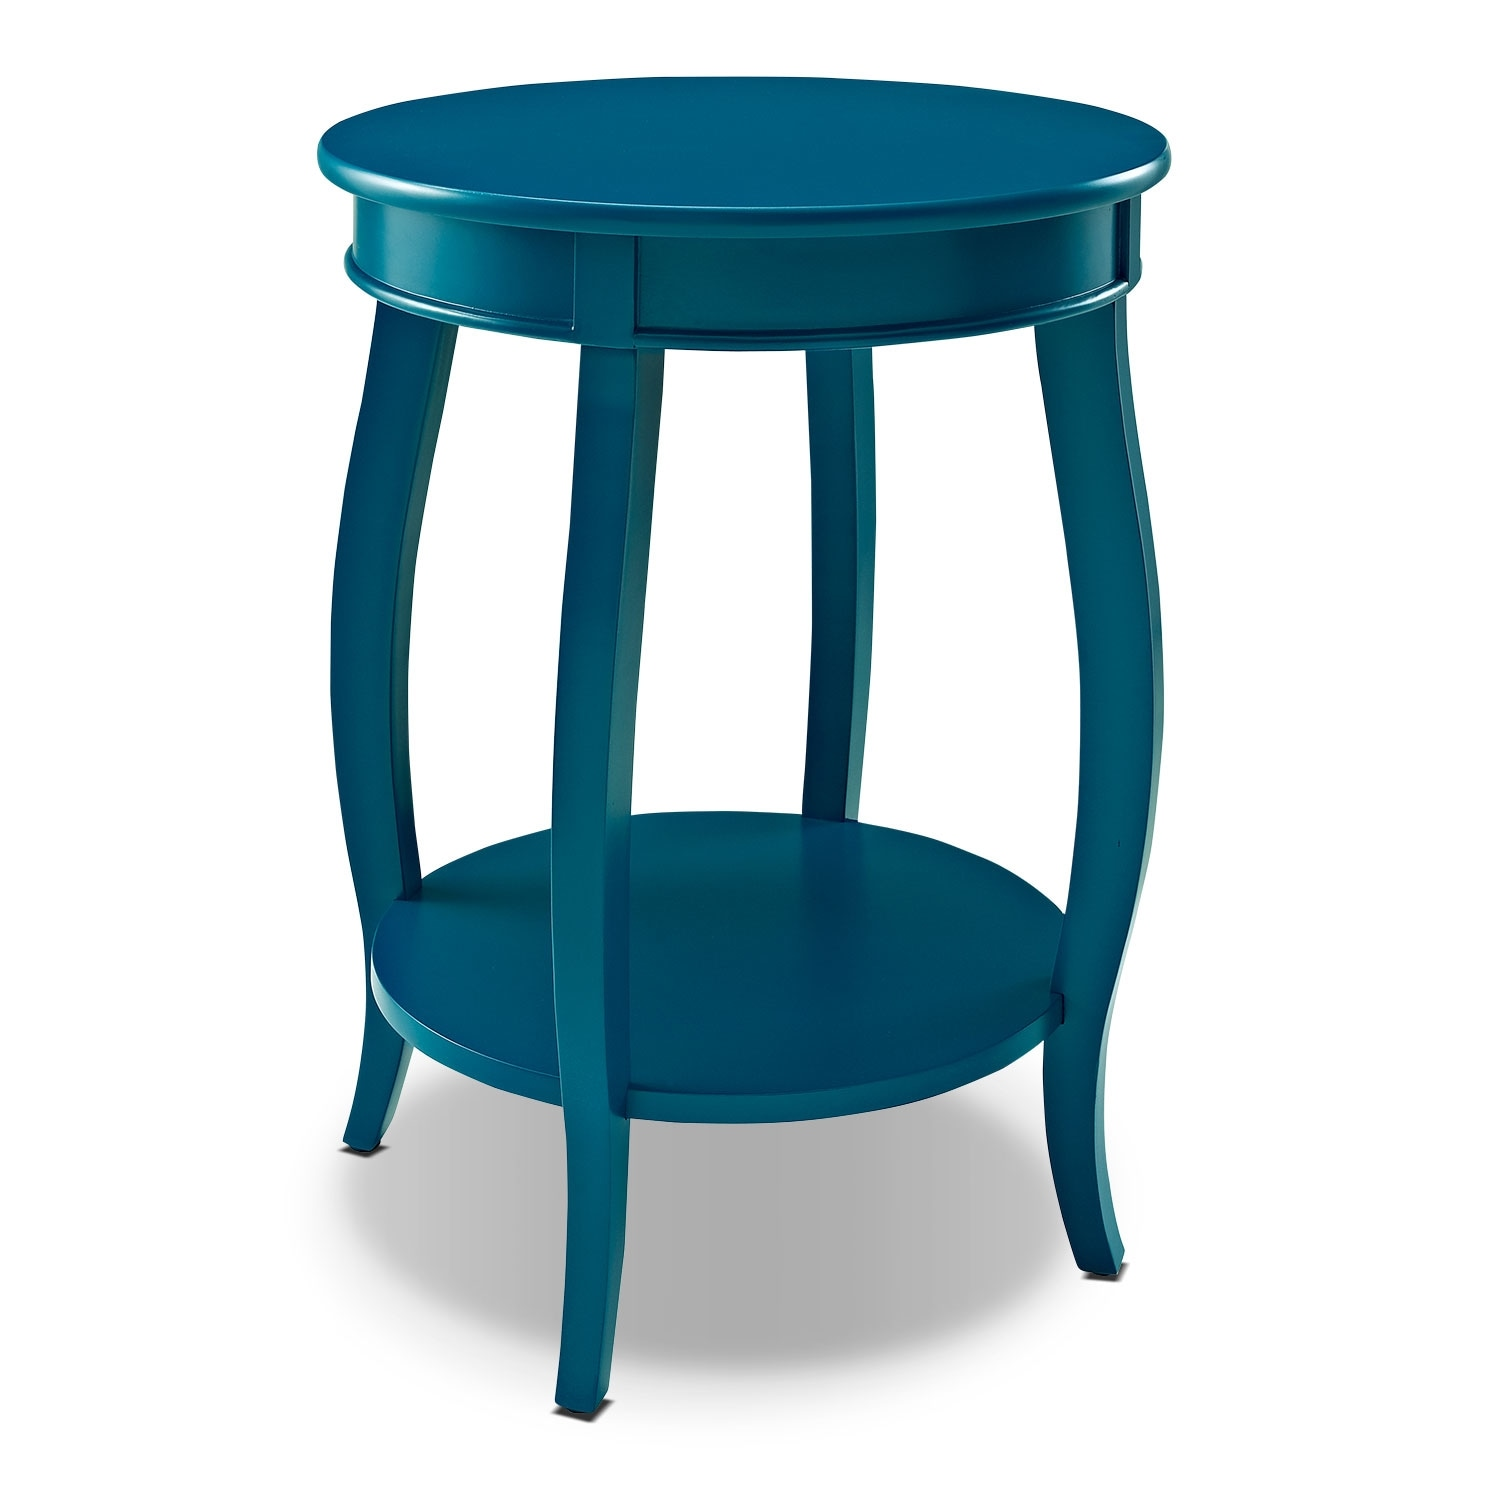 sydney accent table teal value city furniture and mattresses blue end occasional big lots rugs inexpensive patio chairs white floor lamp iron ethan dining tempur pedic dog ashley